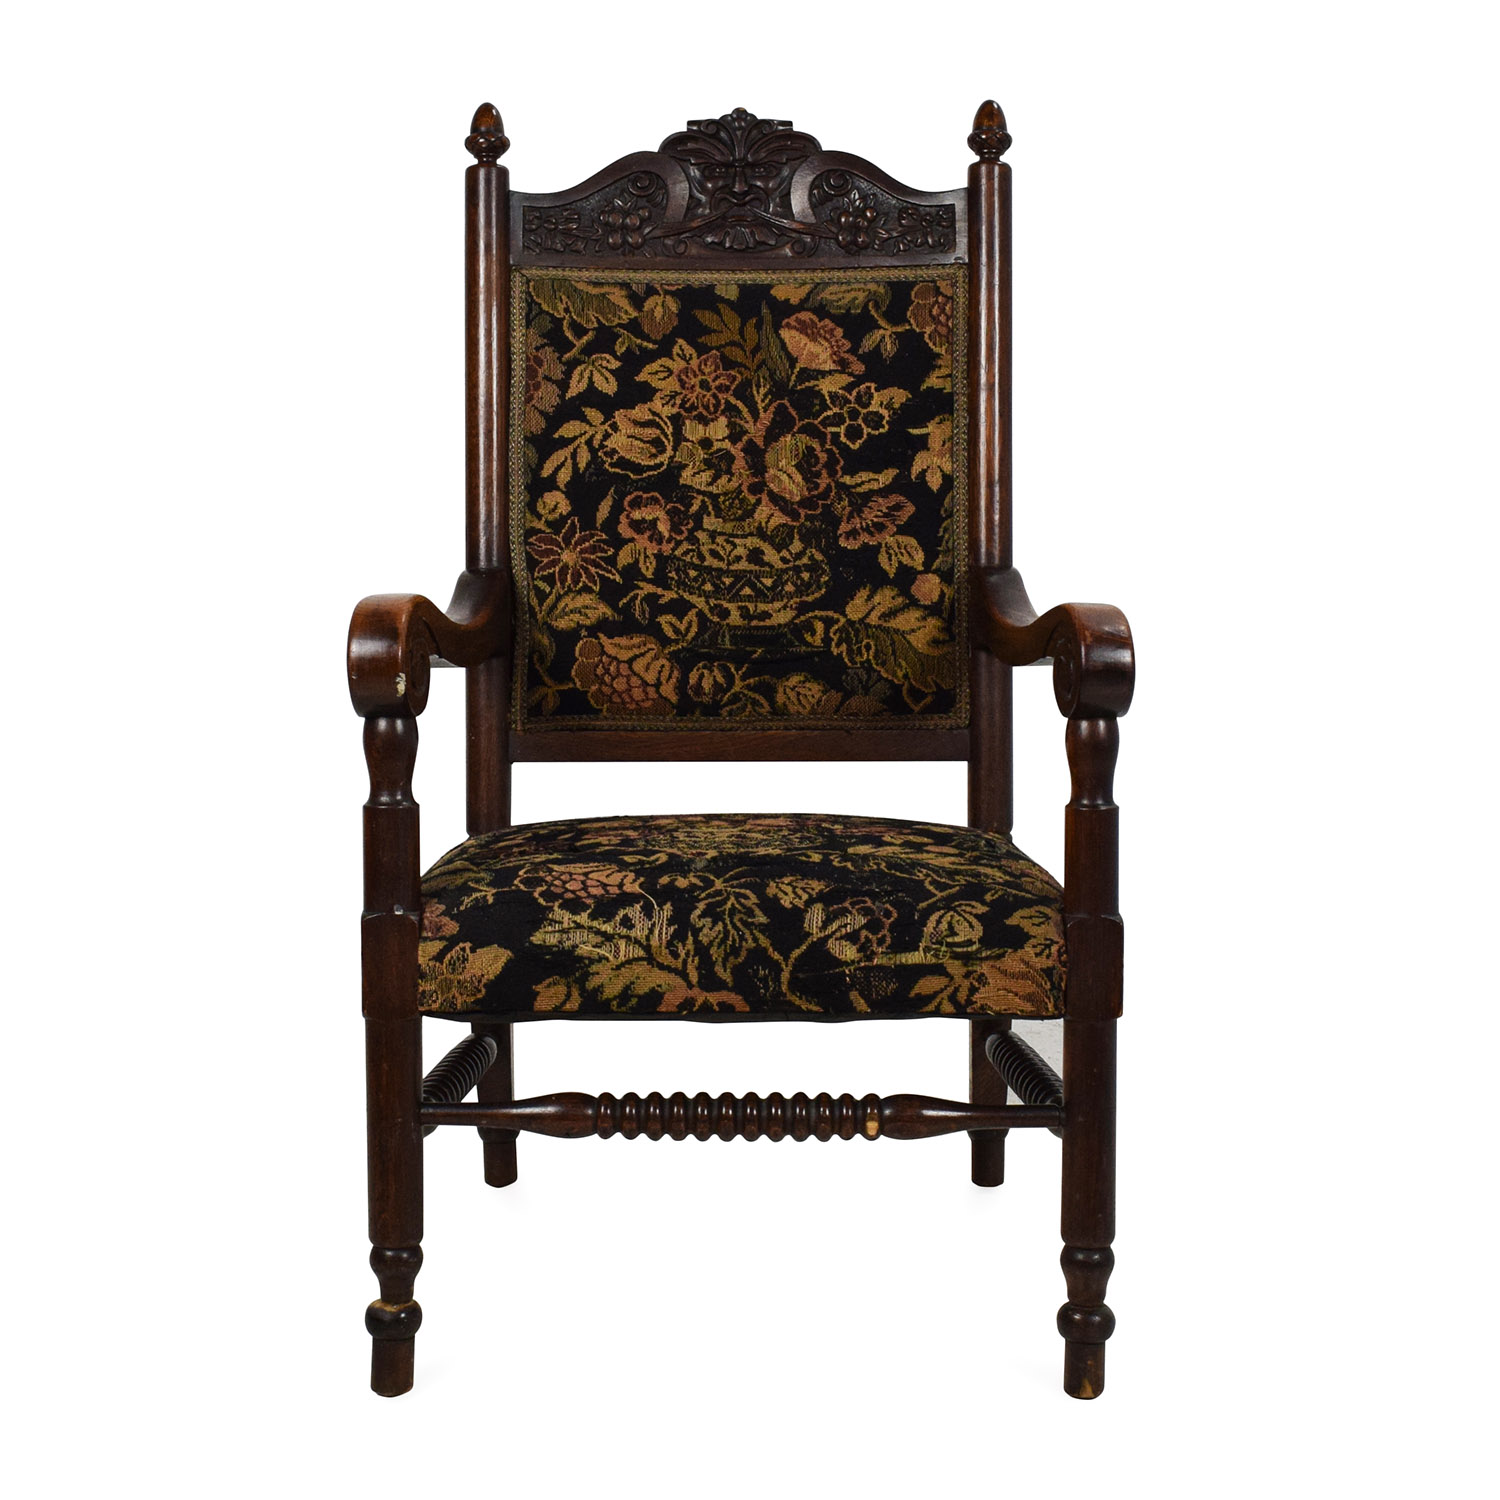 Antique Tudor Upholstered Chair price ... - 84% OFF - Antique Tudor Upholstered Chair / Chairs